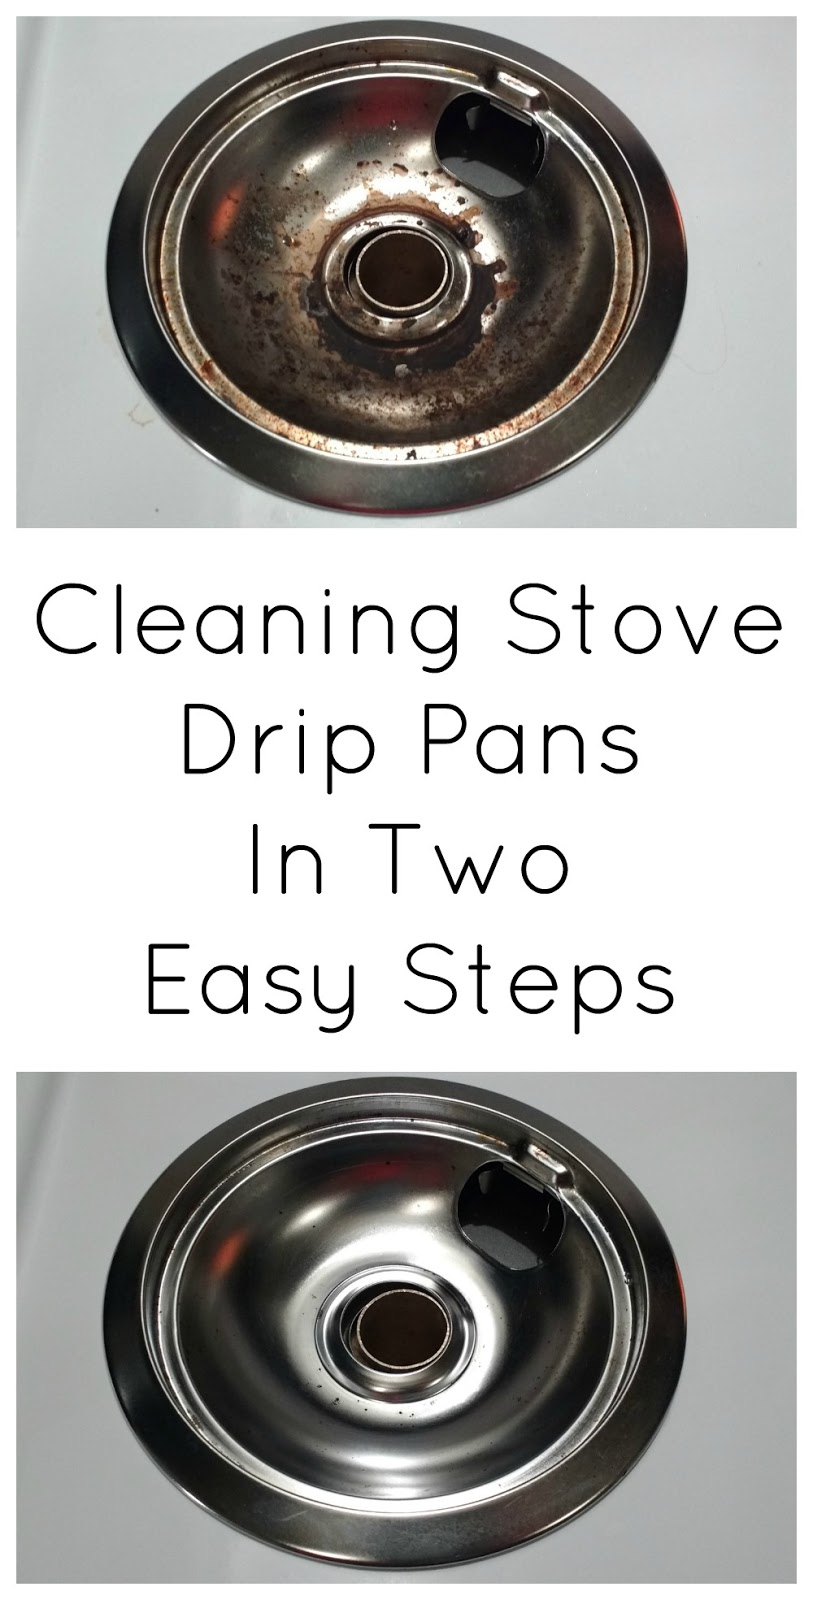 Stove Drip Pans. I Replaced Black Enamel Pans For Chrome Pans ...